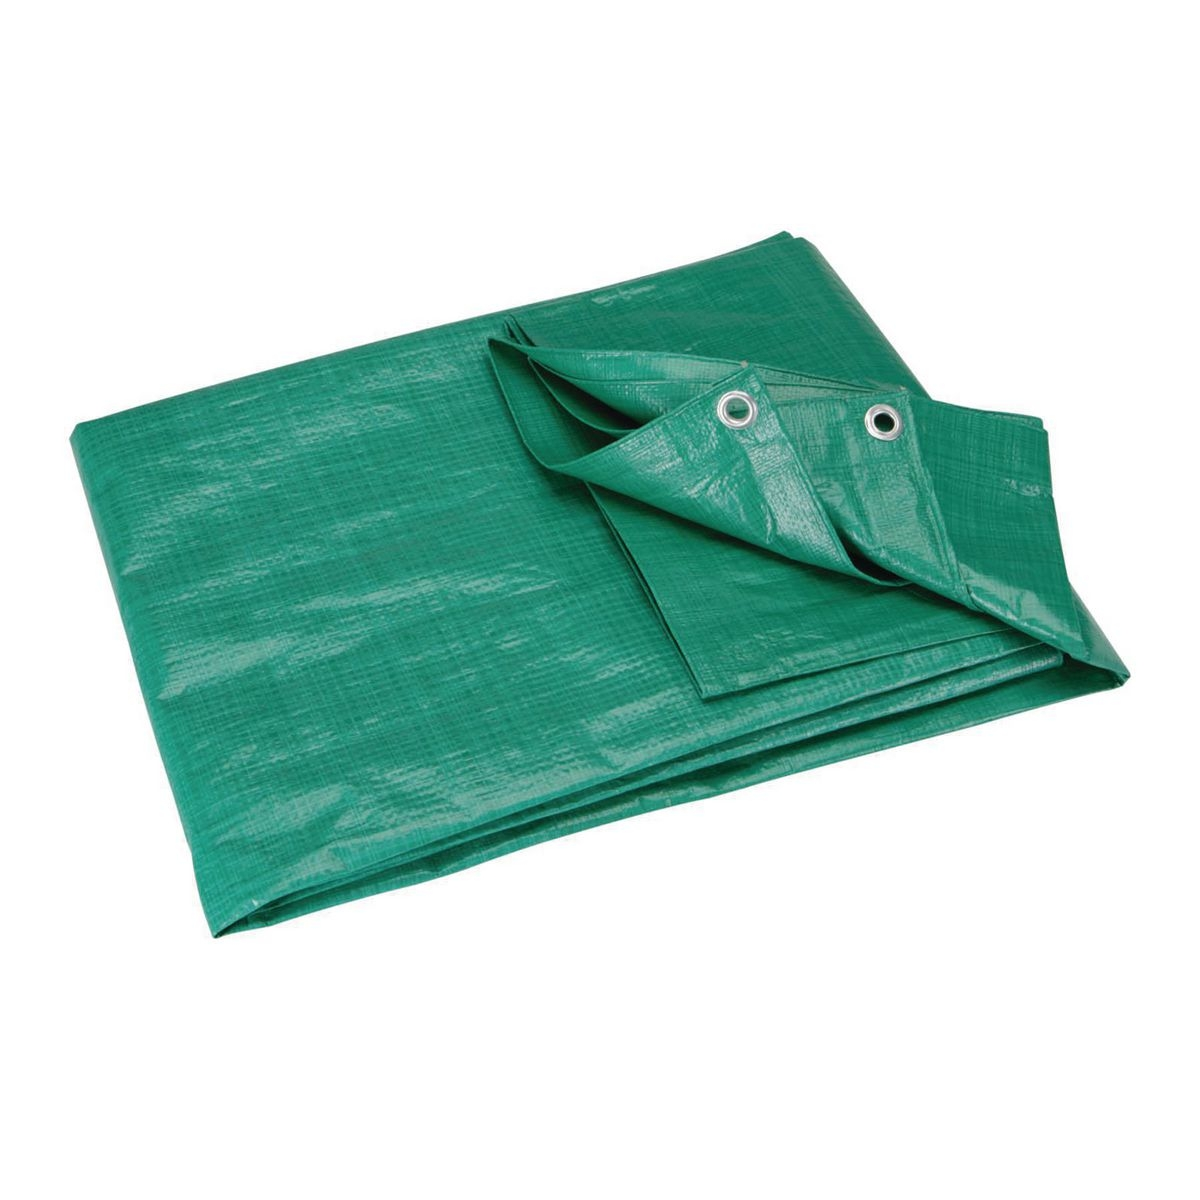 db955fd6bb3259 5 ft. 6 in. x 7 ft. 6 in. Green Farm All Purpose Weather Resistant Tarp